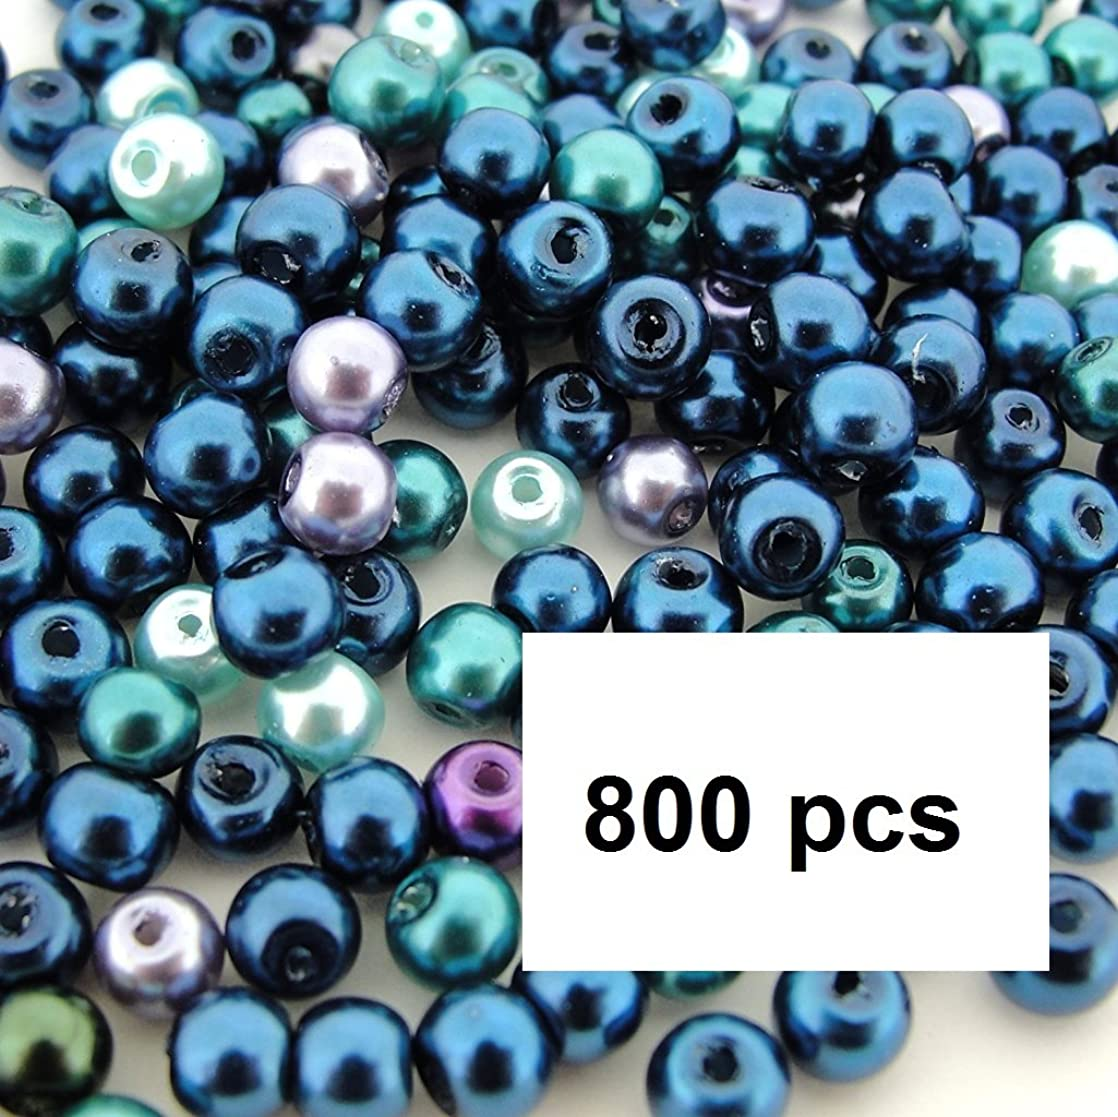 Beads Direct USA's Glass Pearls Mix Tiny Round Glass Pearls Approx 4mm in Diameter - Ocean Mix (4mm, 800pcs) lpkzymhm24109